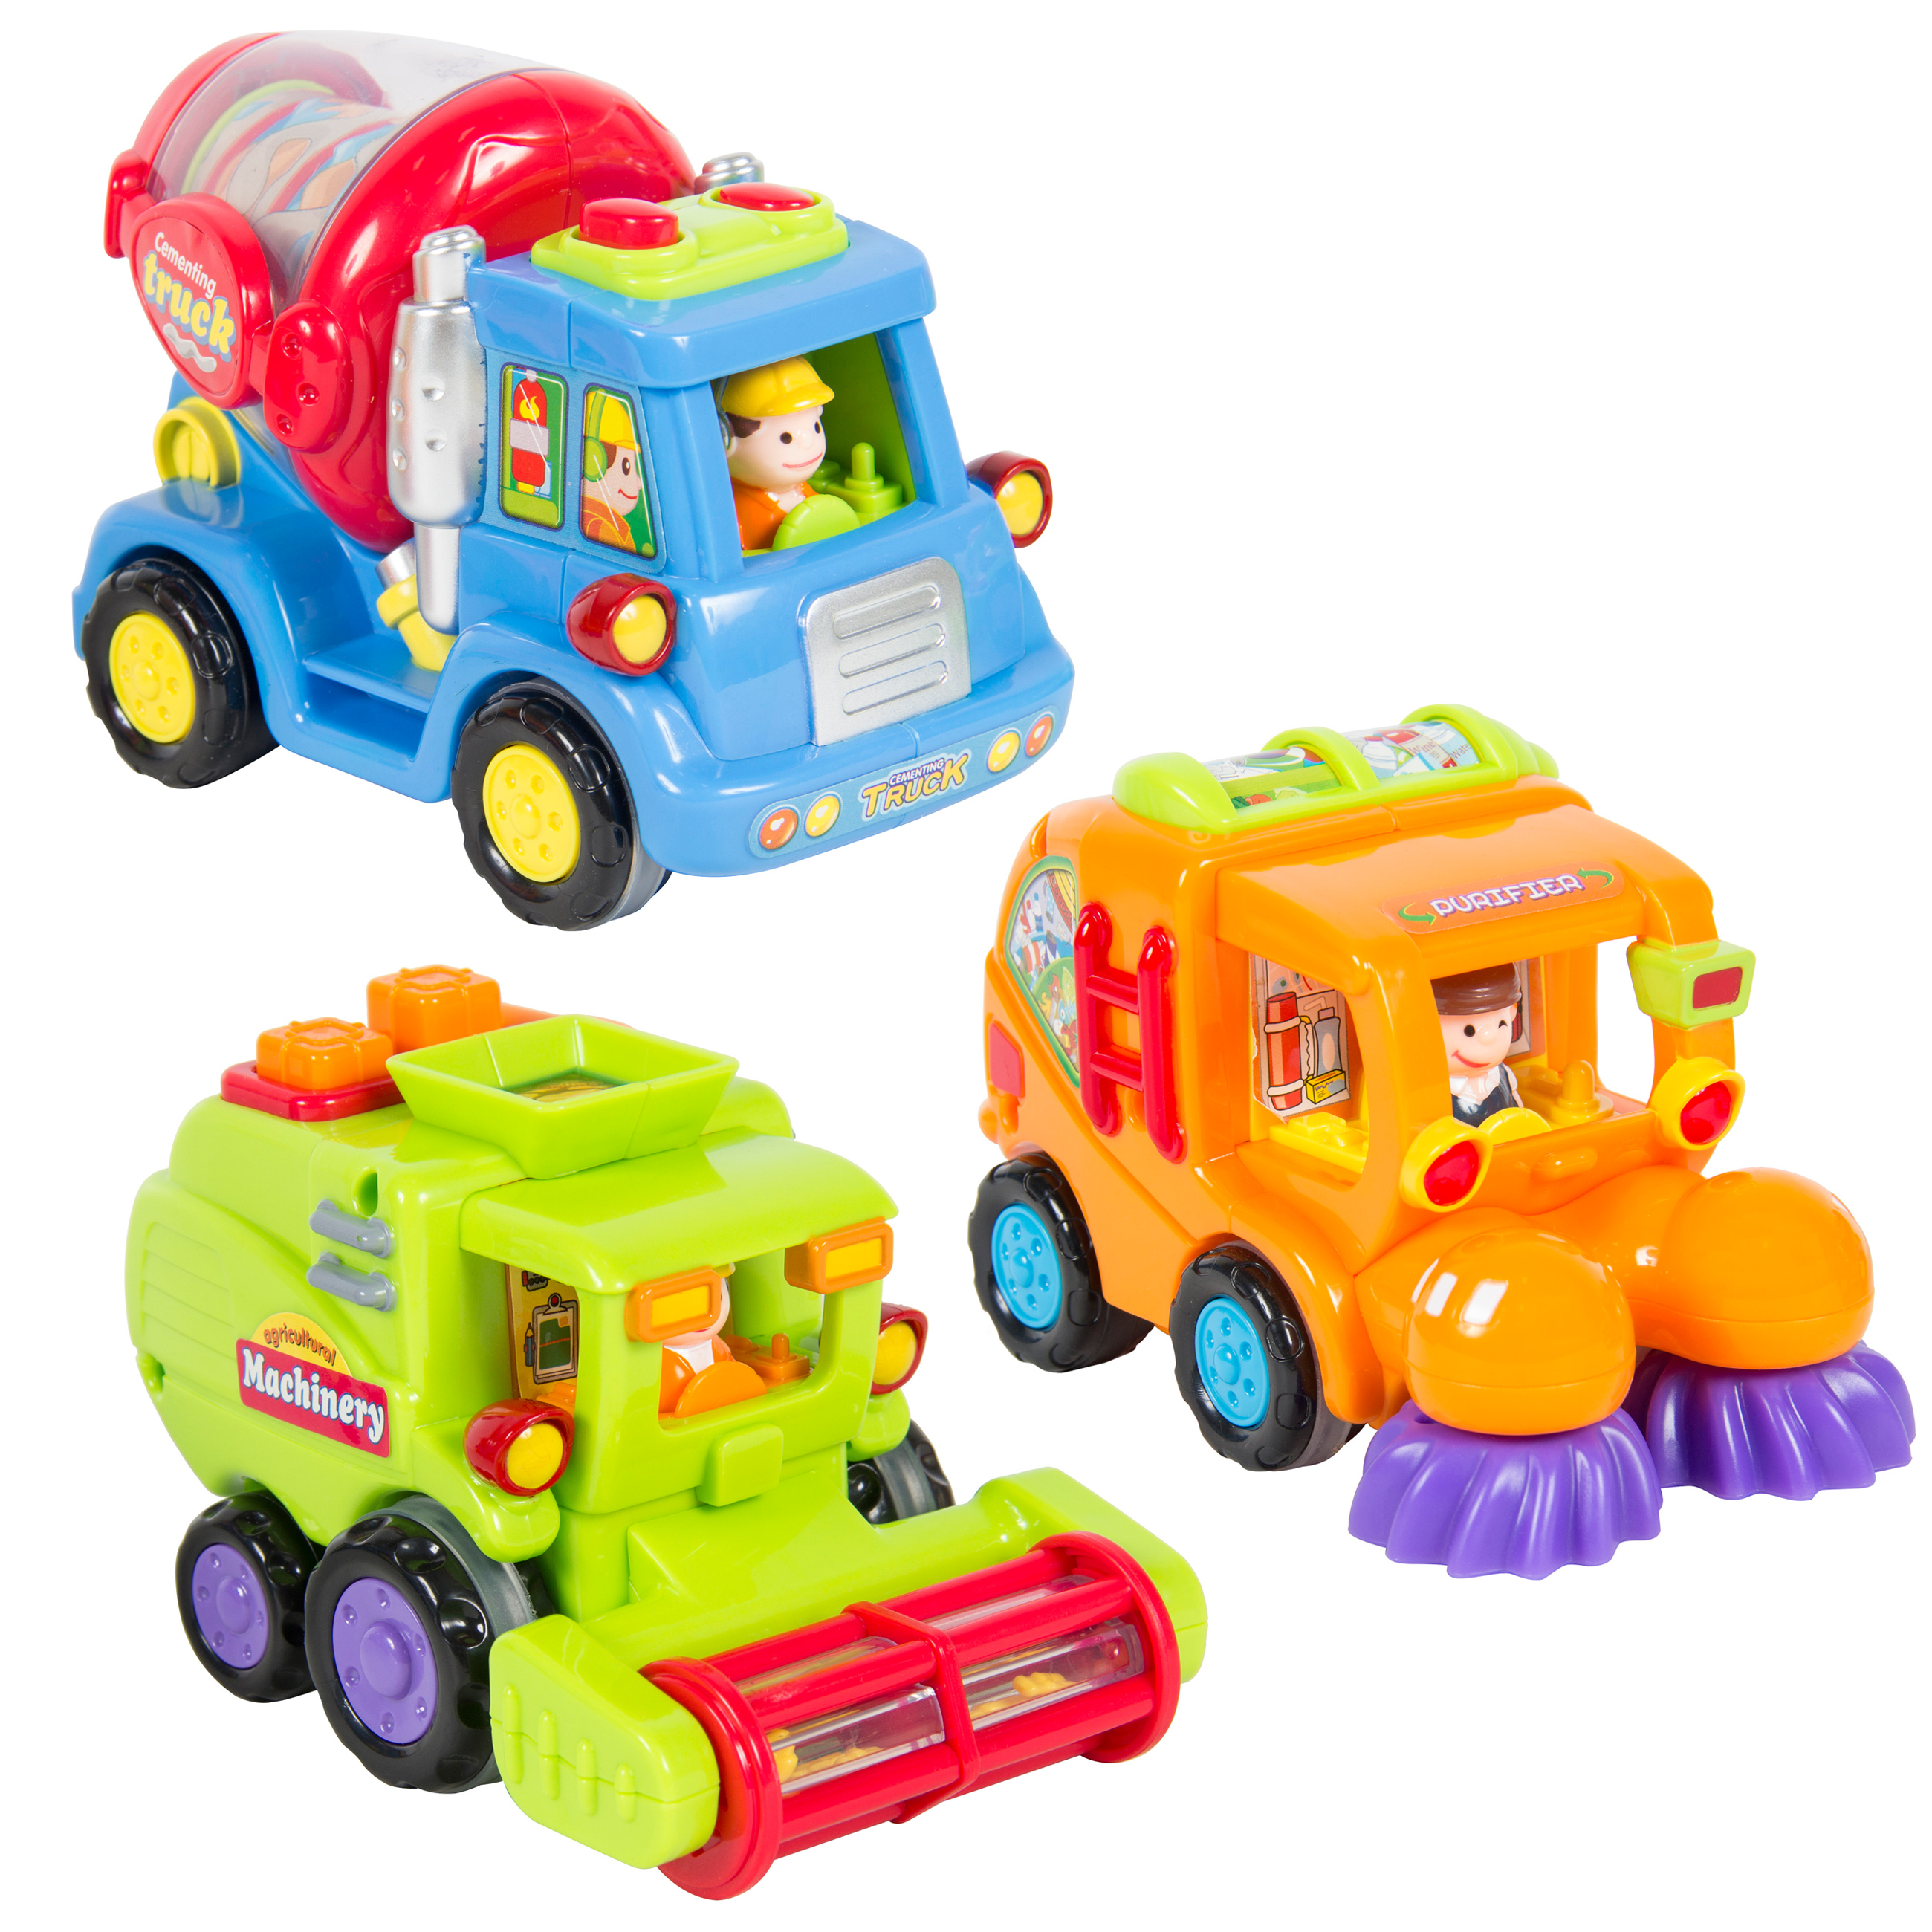 Best Choice Products Set of 3 Kids Push-and-Go Friction Powered Car Toys for Motor Skills, Hand-Eye Coordination, Imaginative Fun w/ Street Sweeper, Cement Truck, Harvest Truck - Multicolor